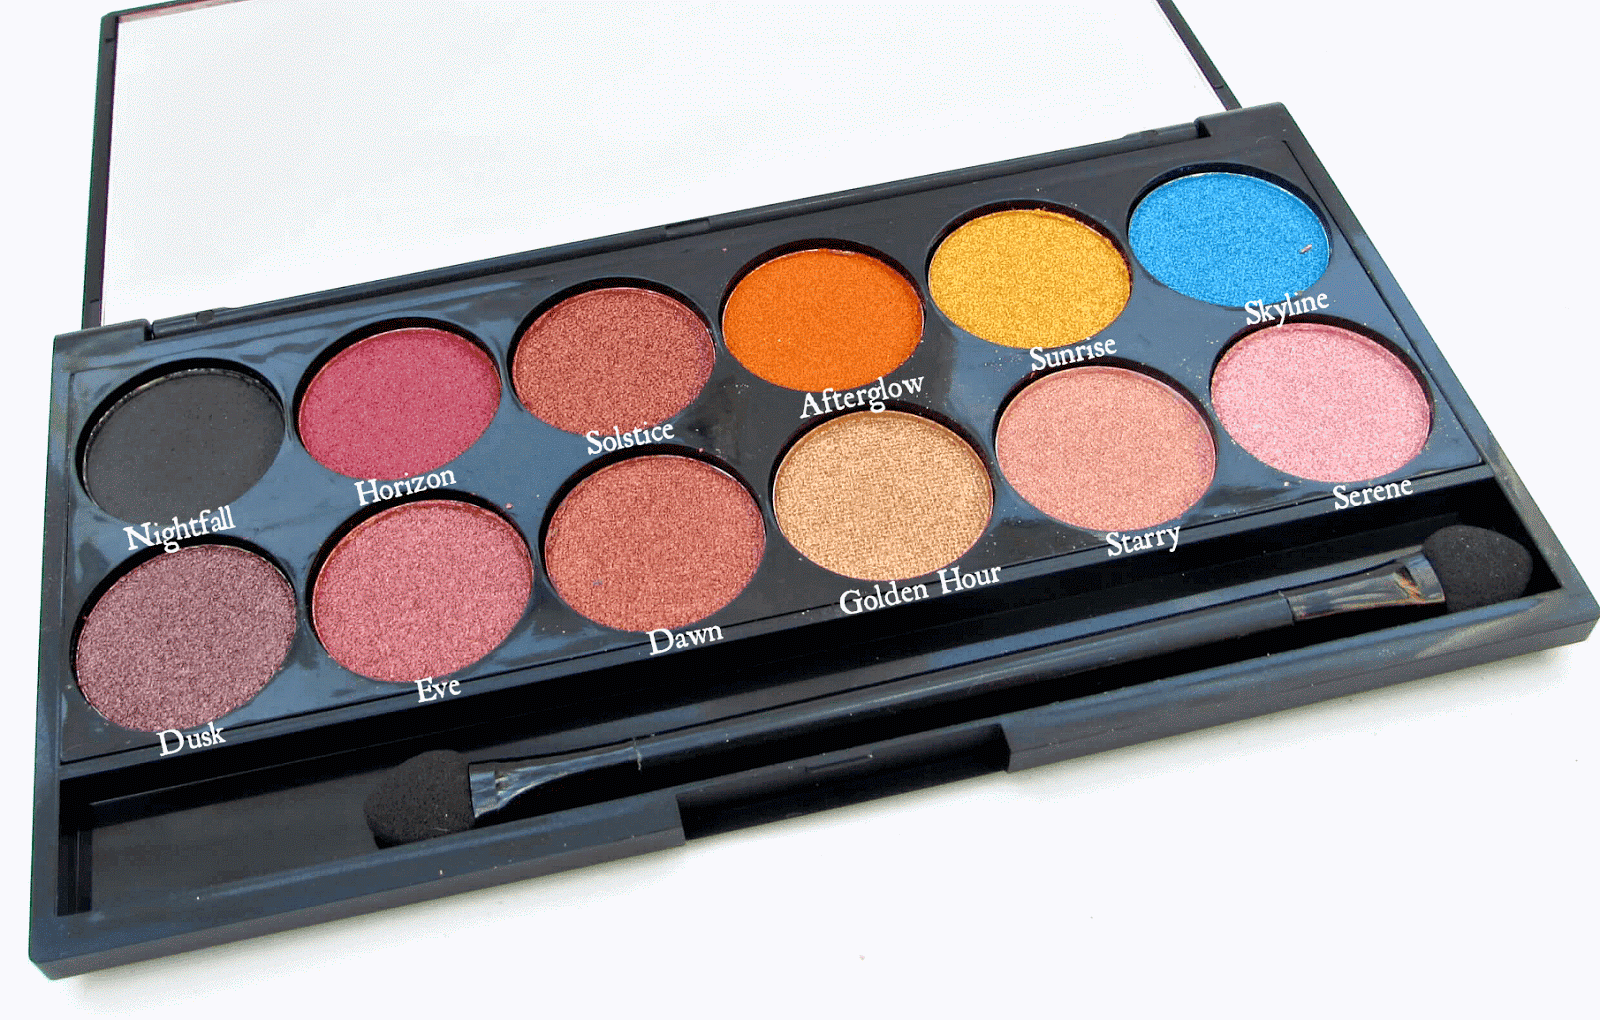 Sleek Sunset Eyeshadow Palette and Matte Me Lips in Birthday Suit